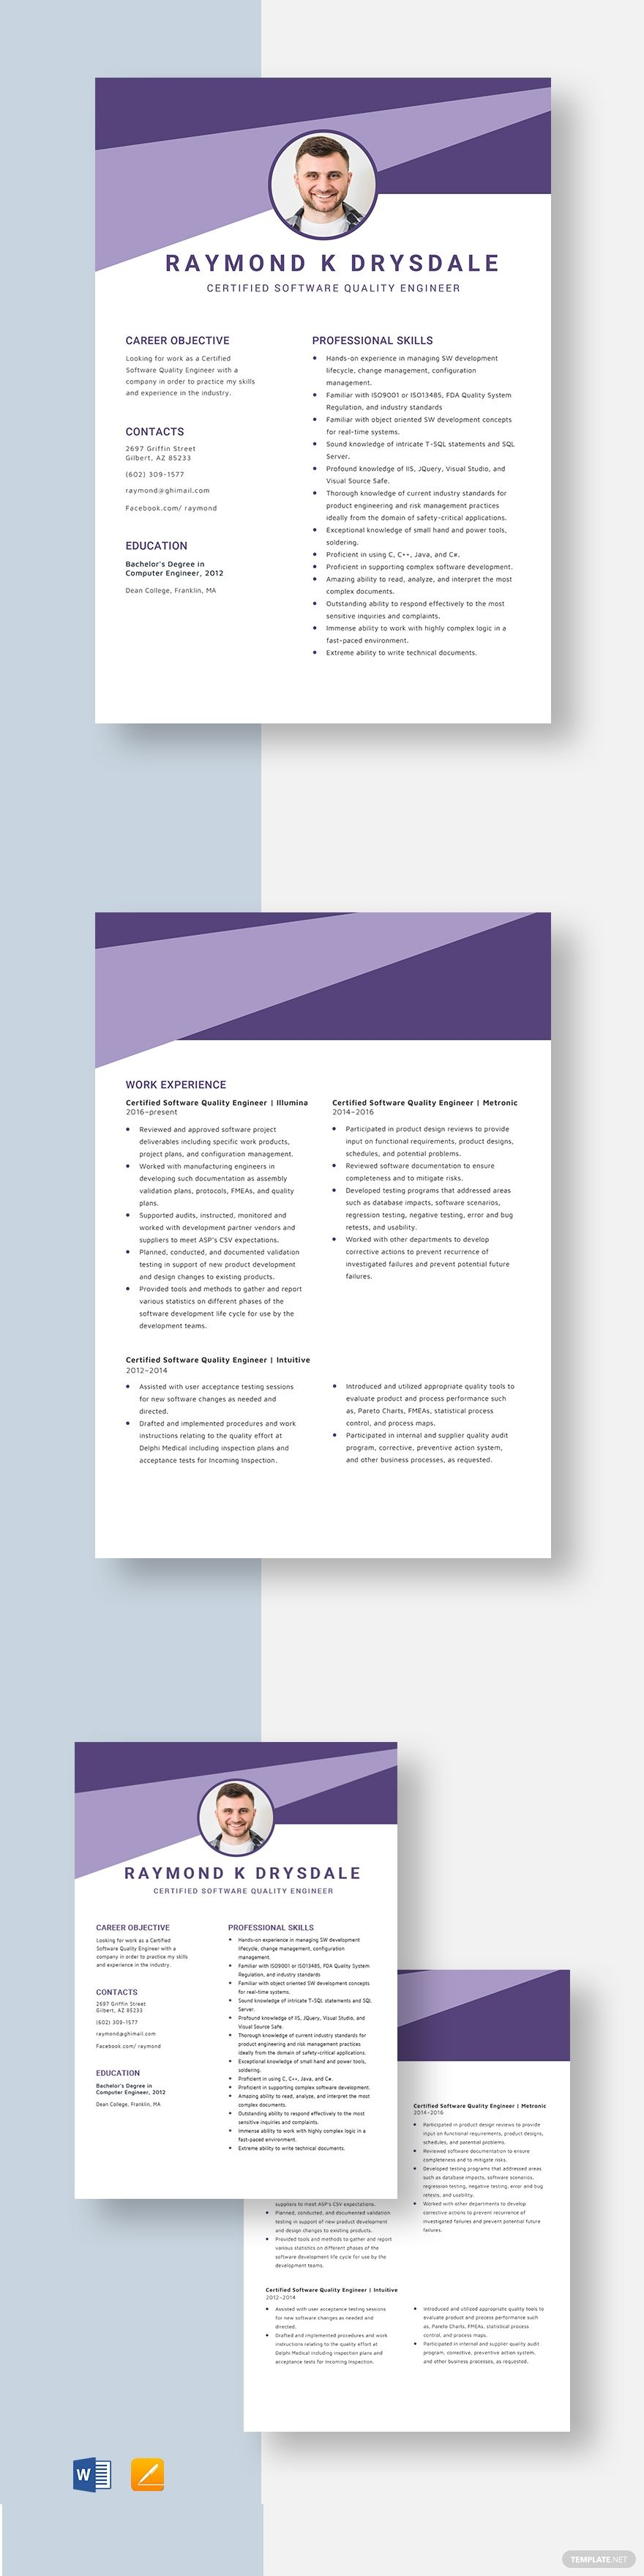 Certified software quality engineer resume template in